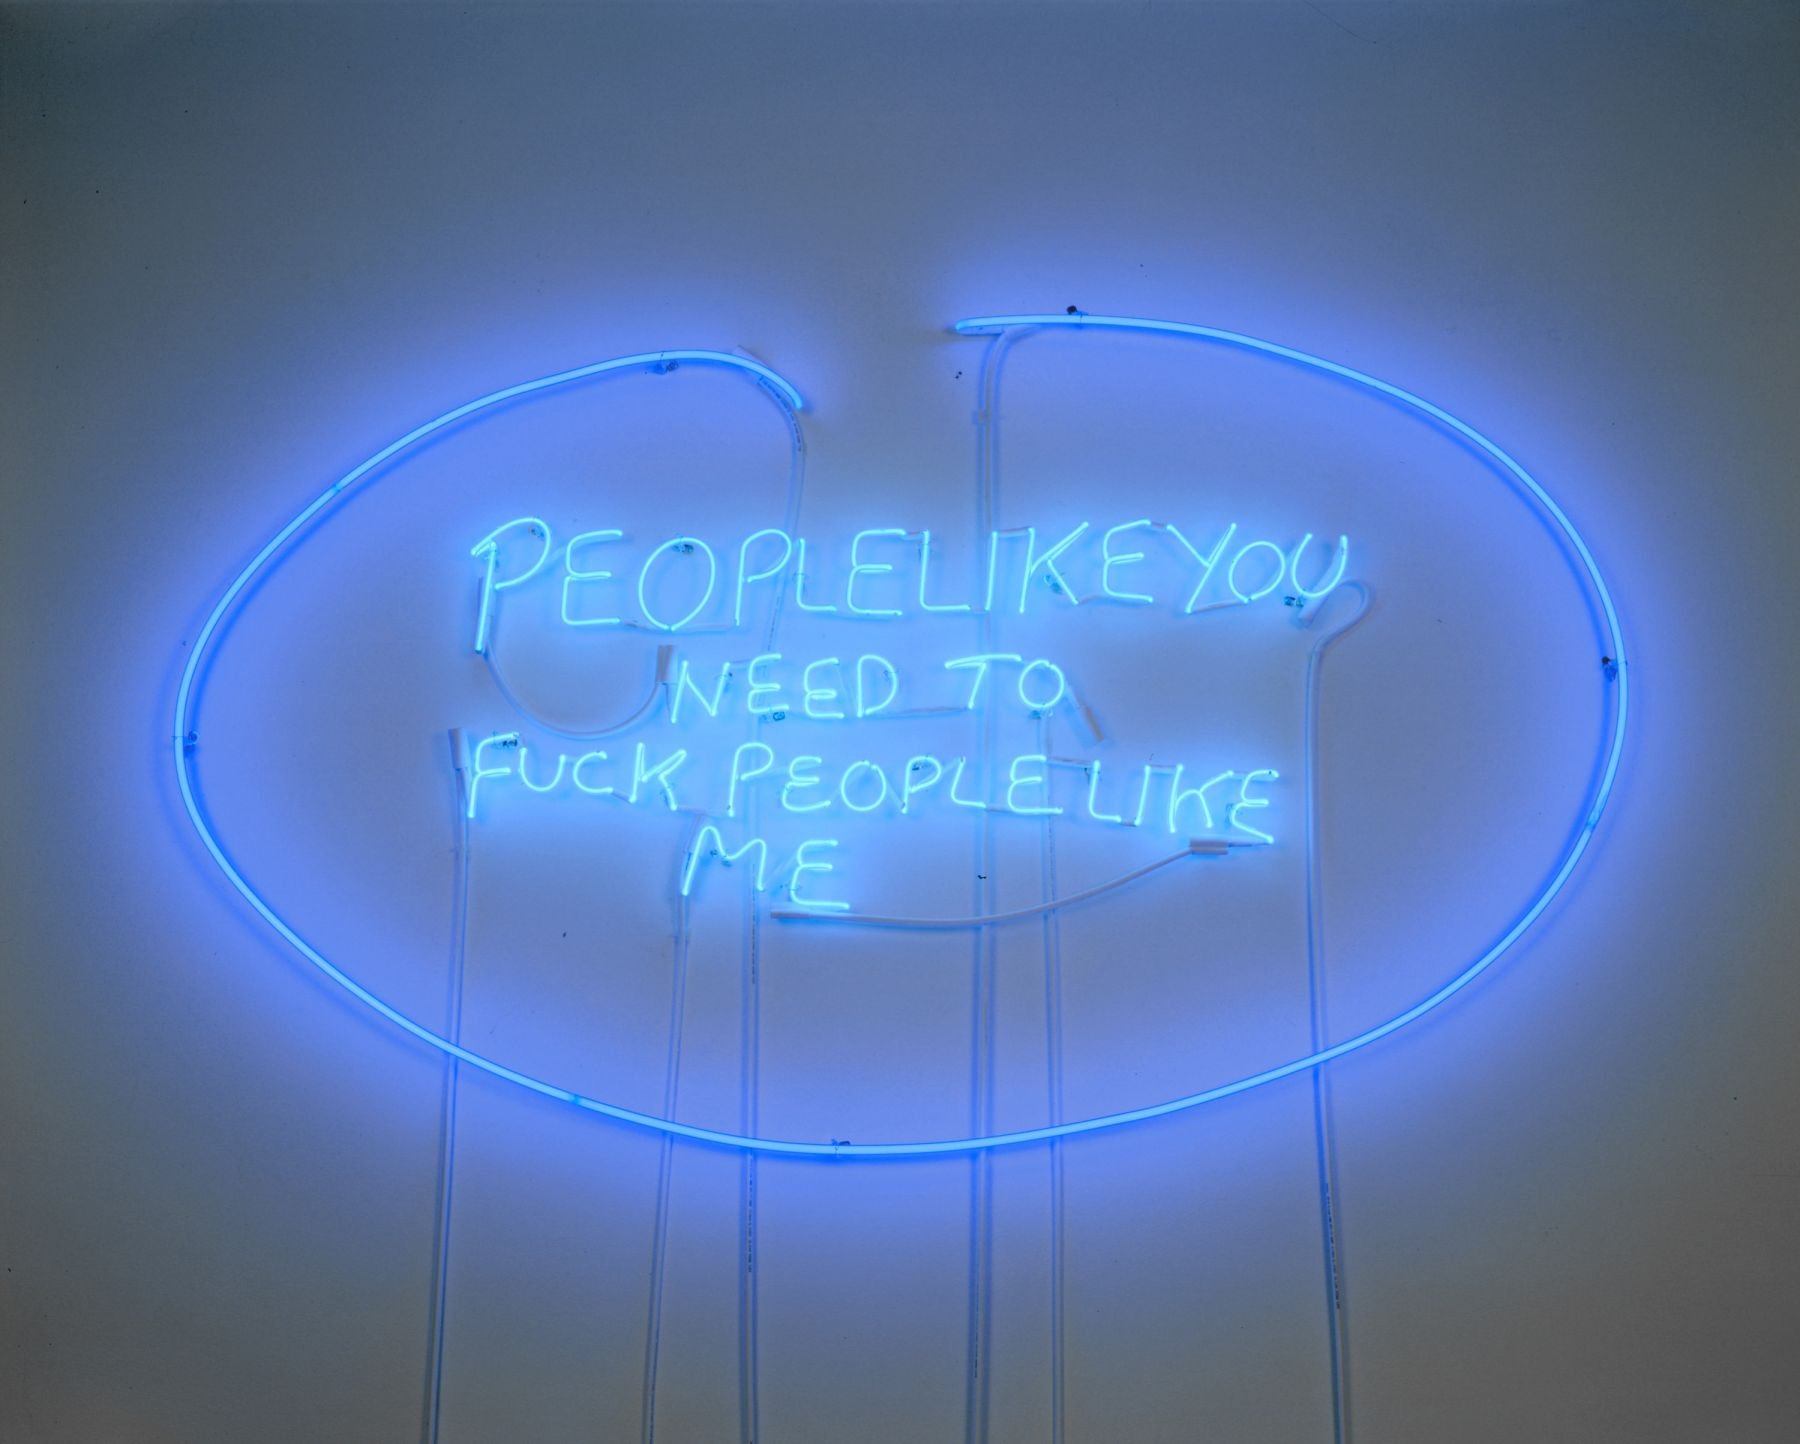 TRACEY EMIN, People Like You Need to Fuck People Like Me, 2002